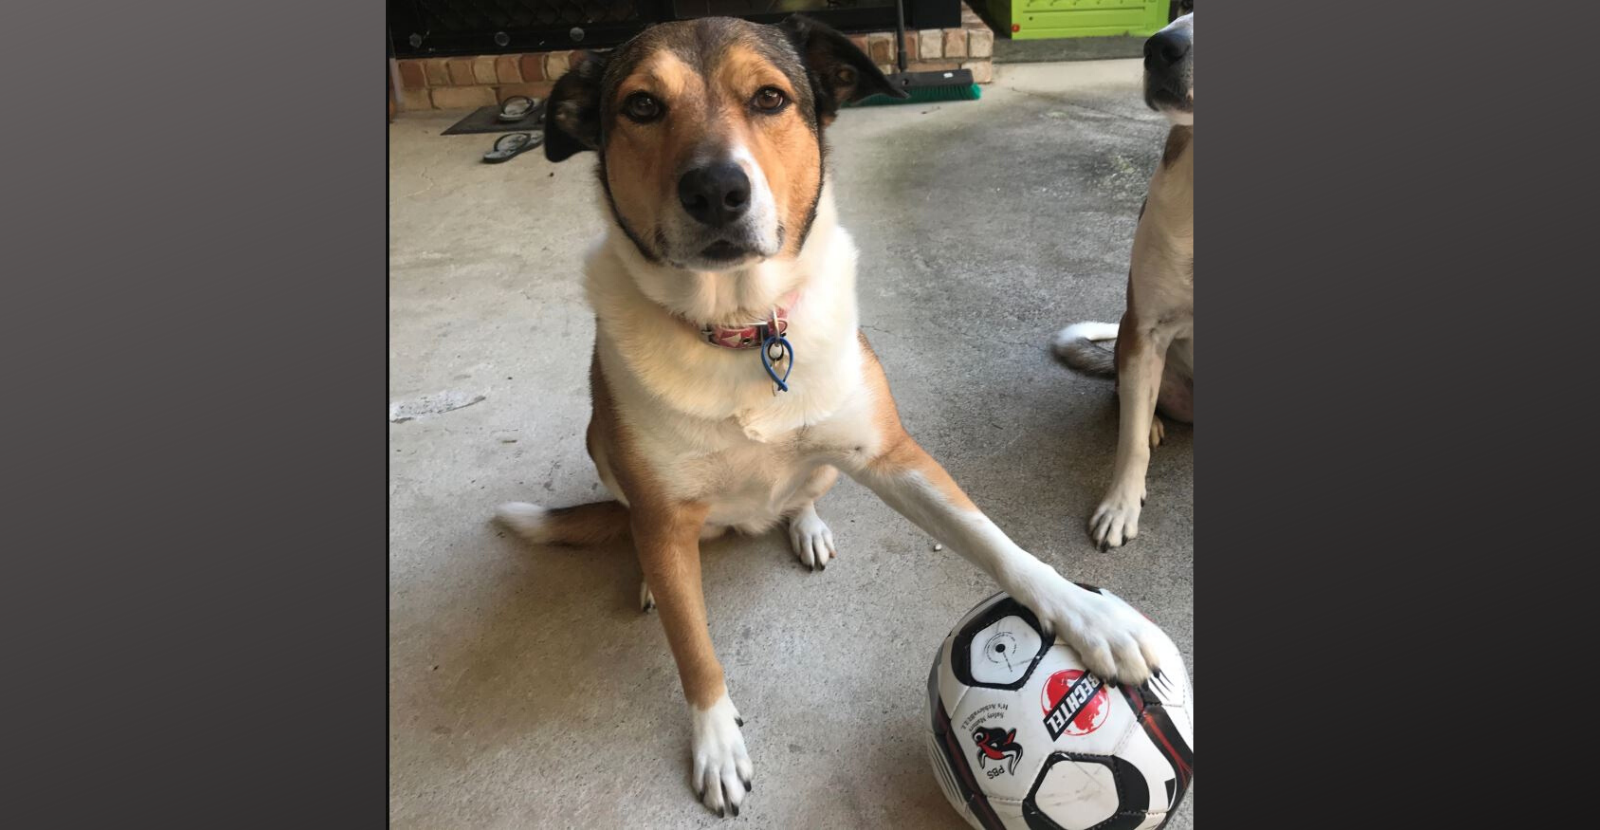 Glyde Boosts Soccer Dog